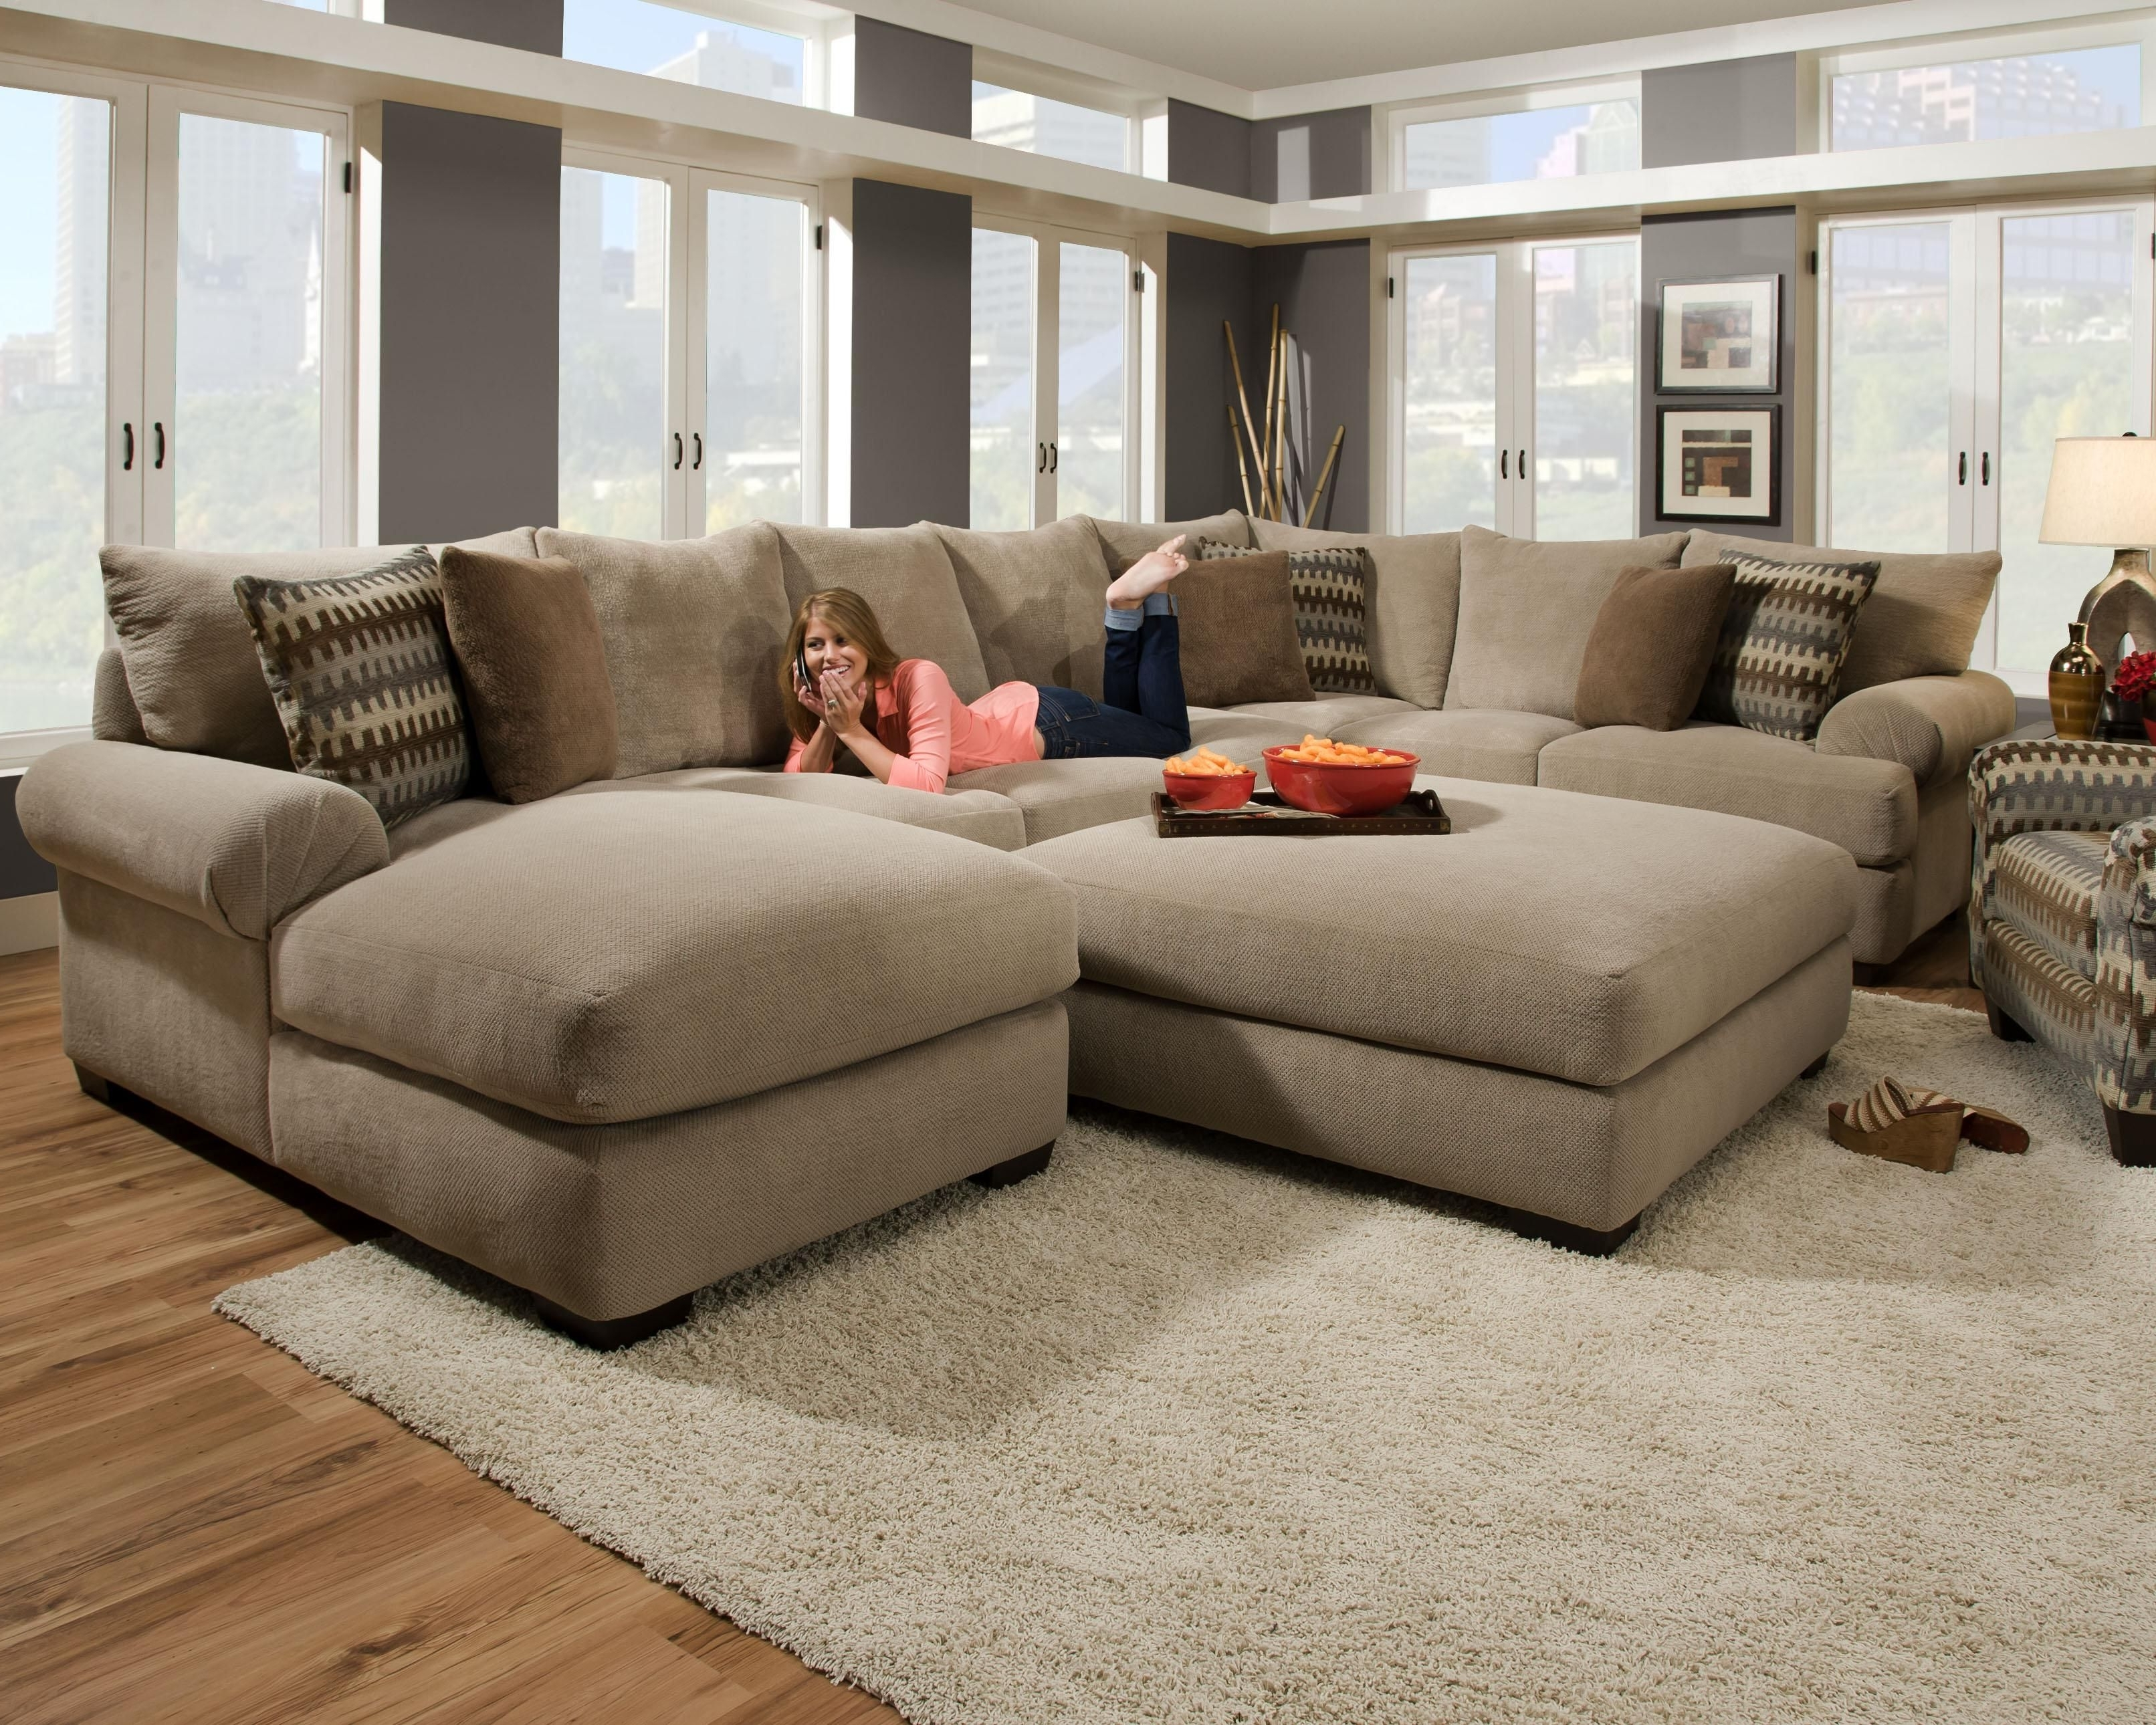 Furniture Design Idea For Living Room And Oversized U Shaped Regarding Widely Used Extra Large U Shaped Sectionals (View 11 of 15)